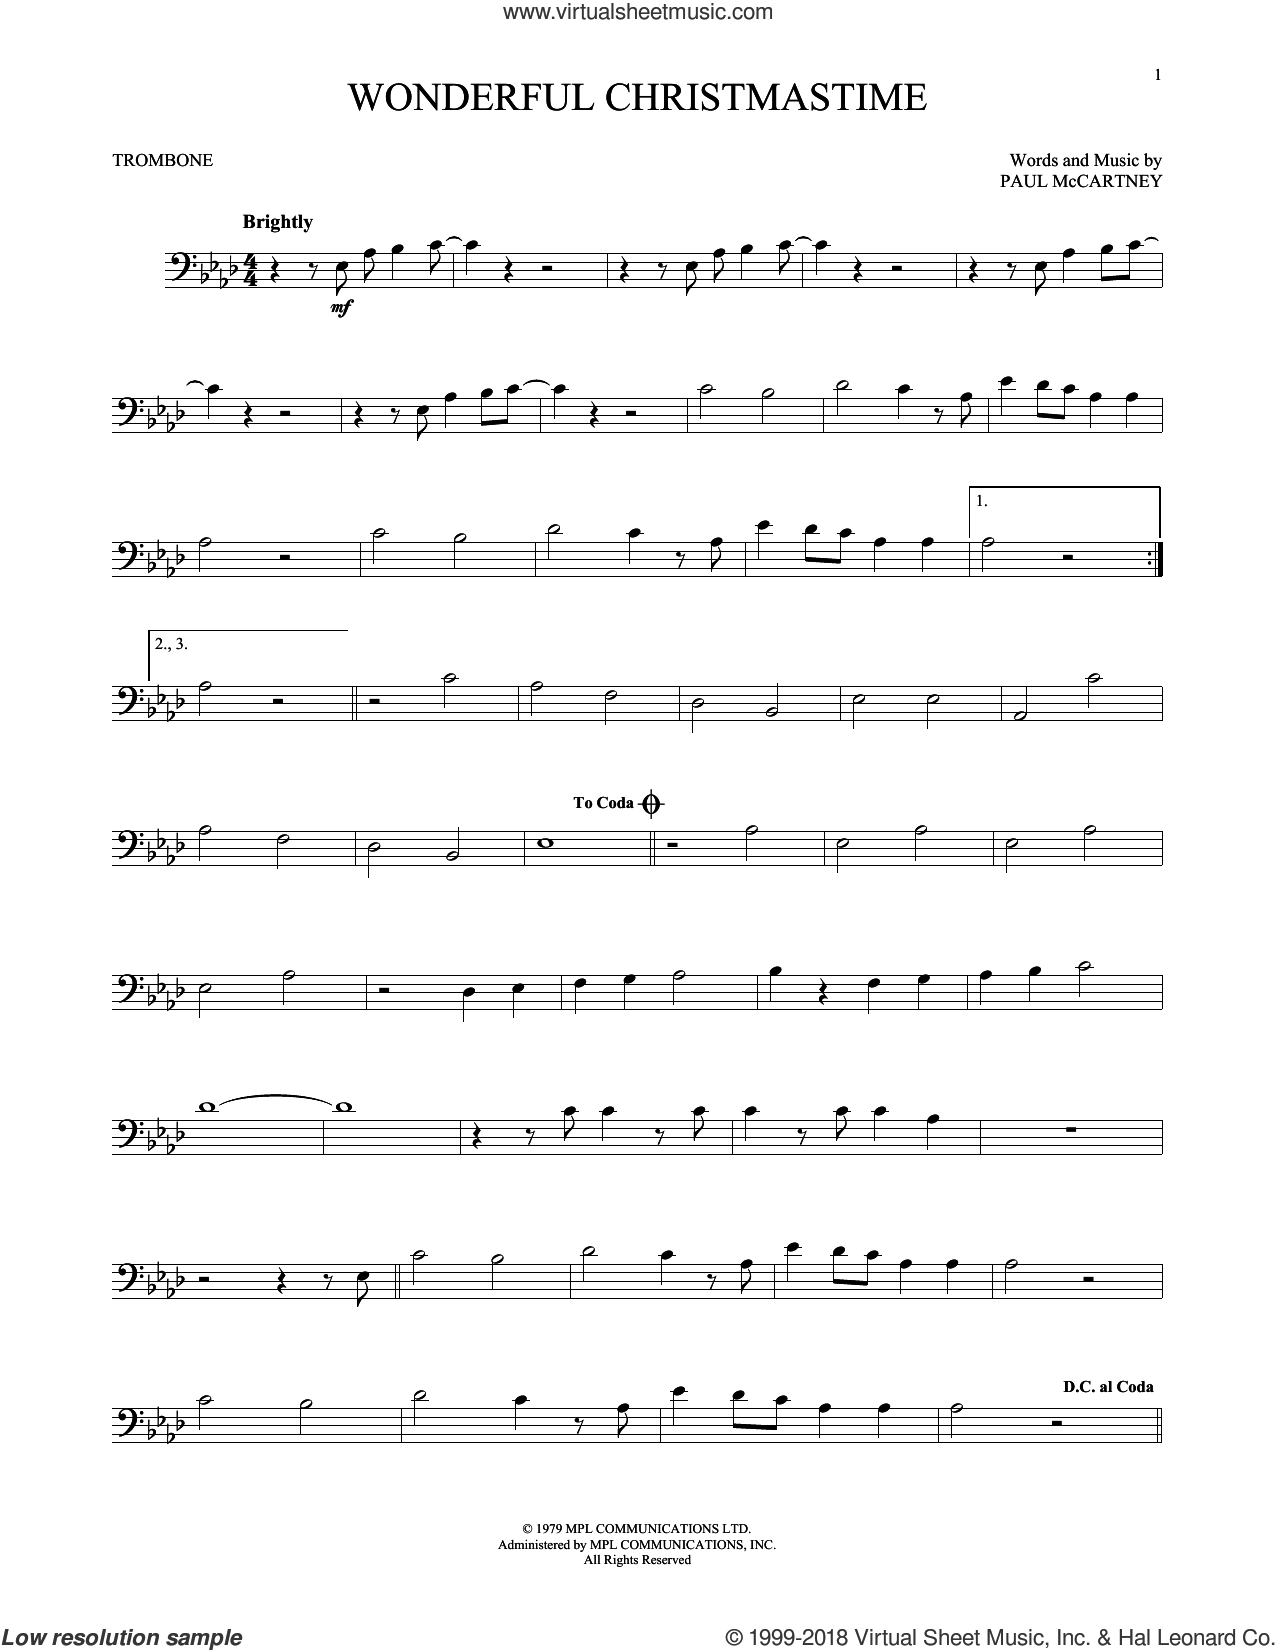 Wonderful Christmastime sheet music for trombone solo by Paul McCartney, Eli Young Band and Straight No Chaser featuring Paul McCartney, intermediate skill level